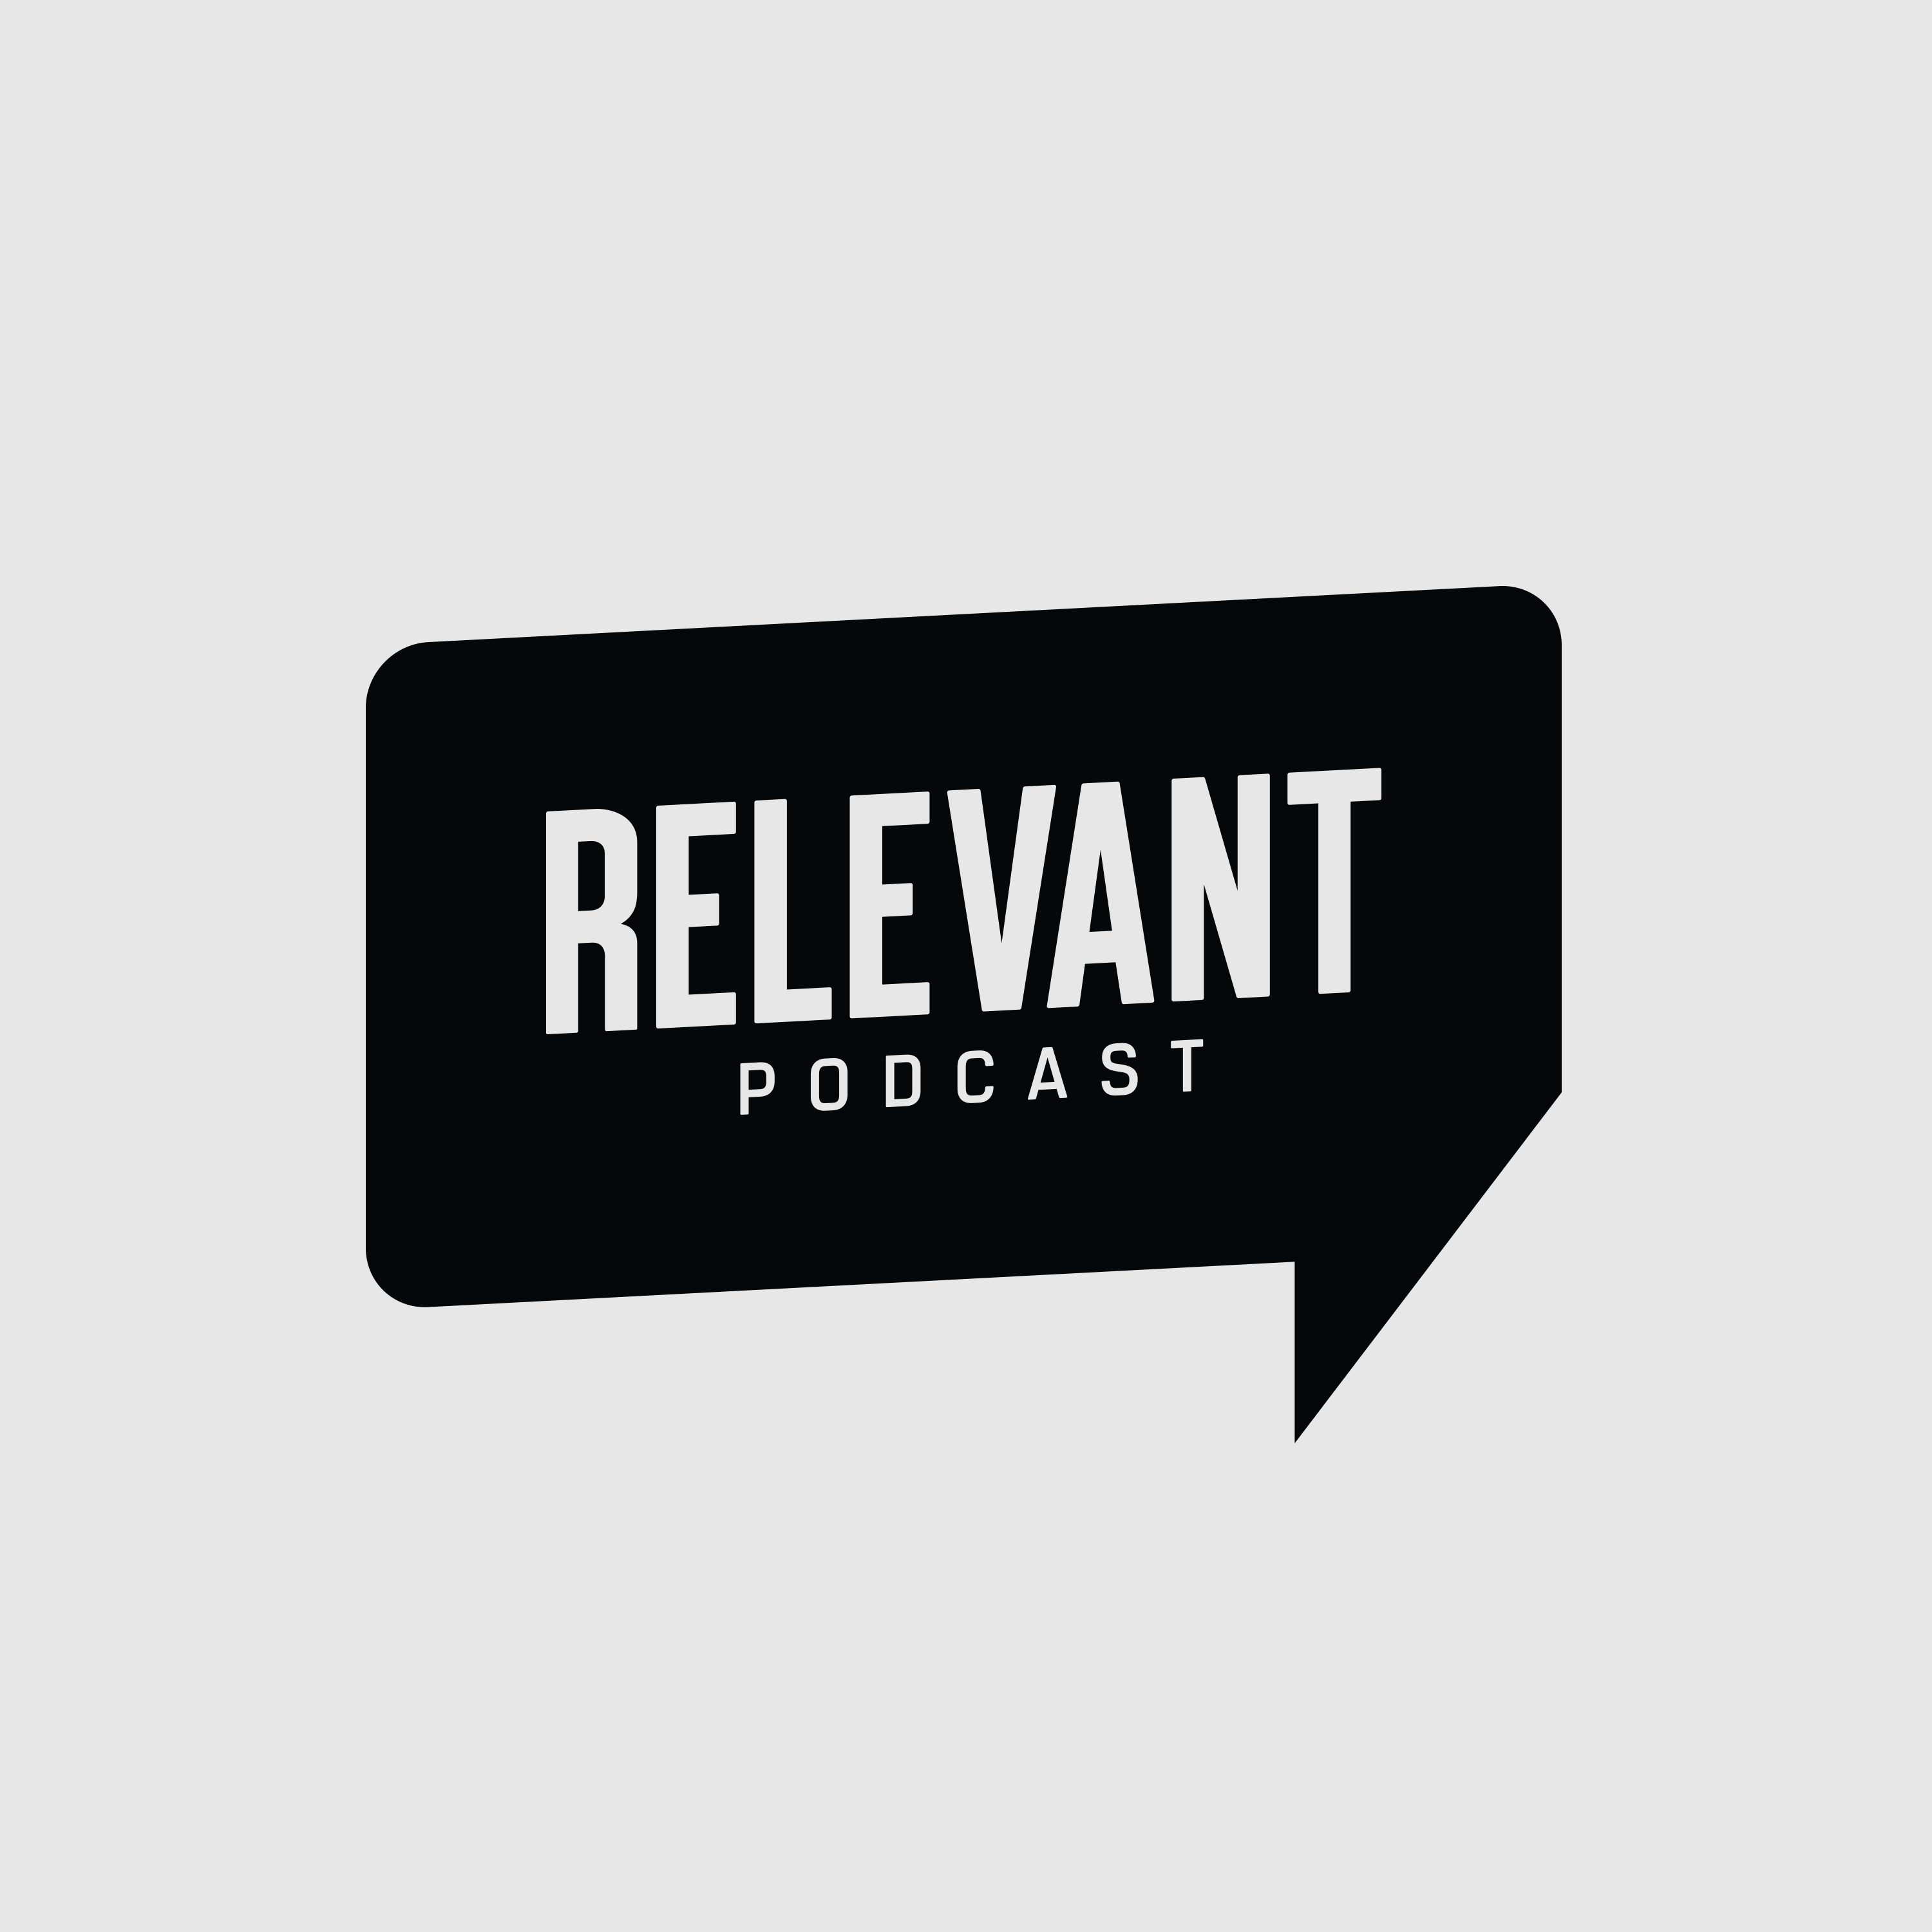 The RELEVANT Podcast show art